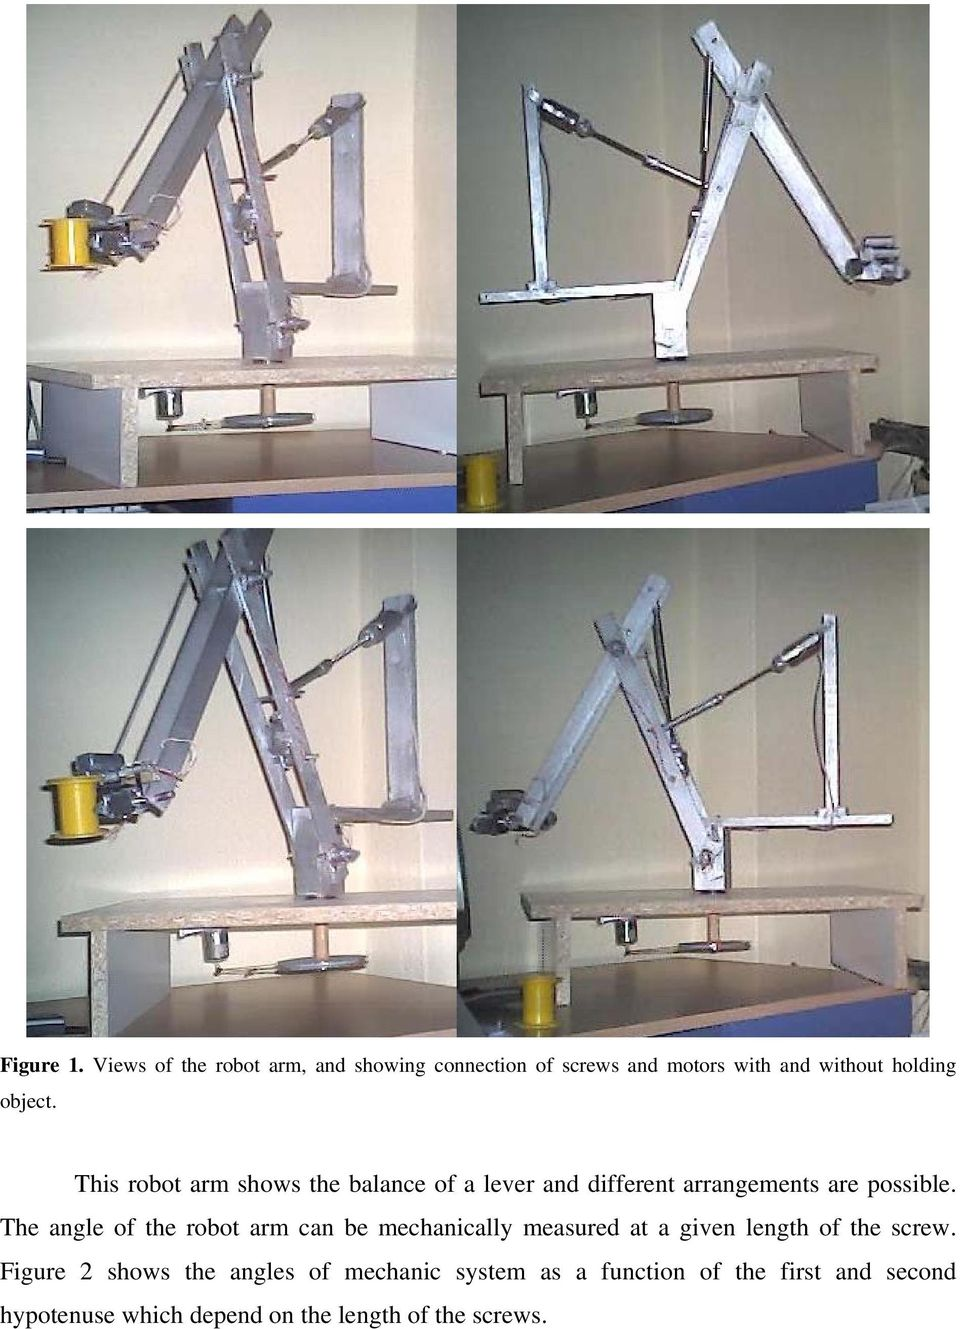 This robot arm shows the balance of a lever and different arrangements are possible.